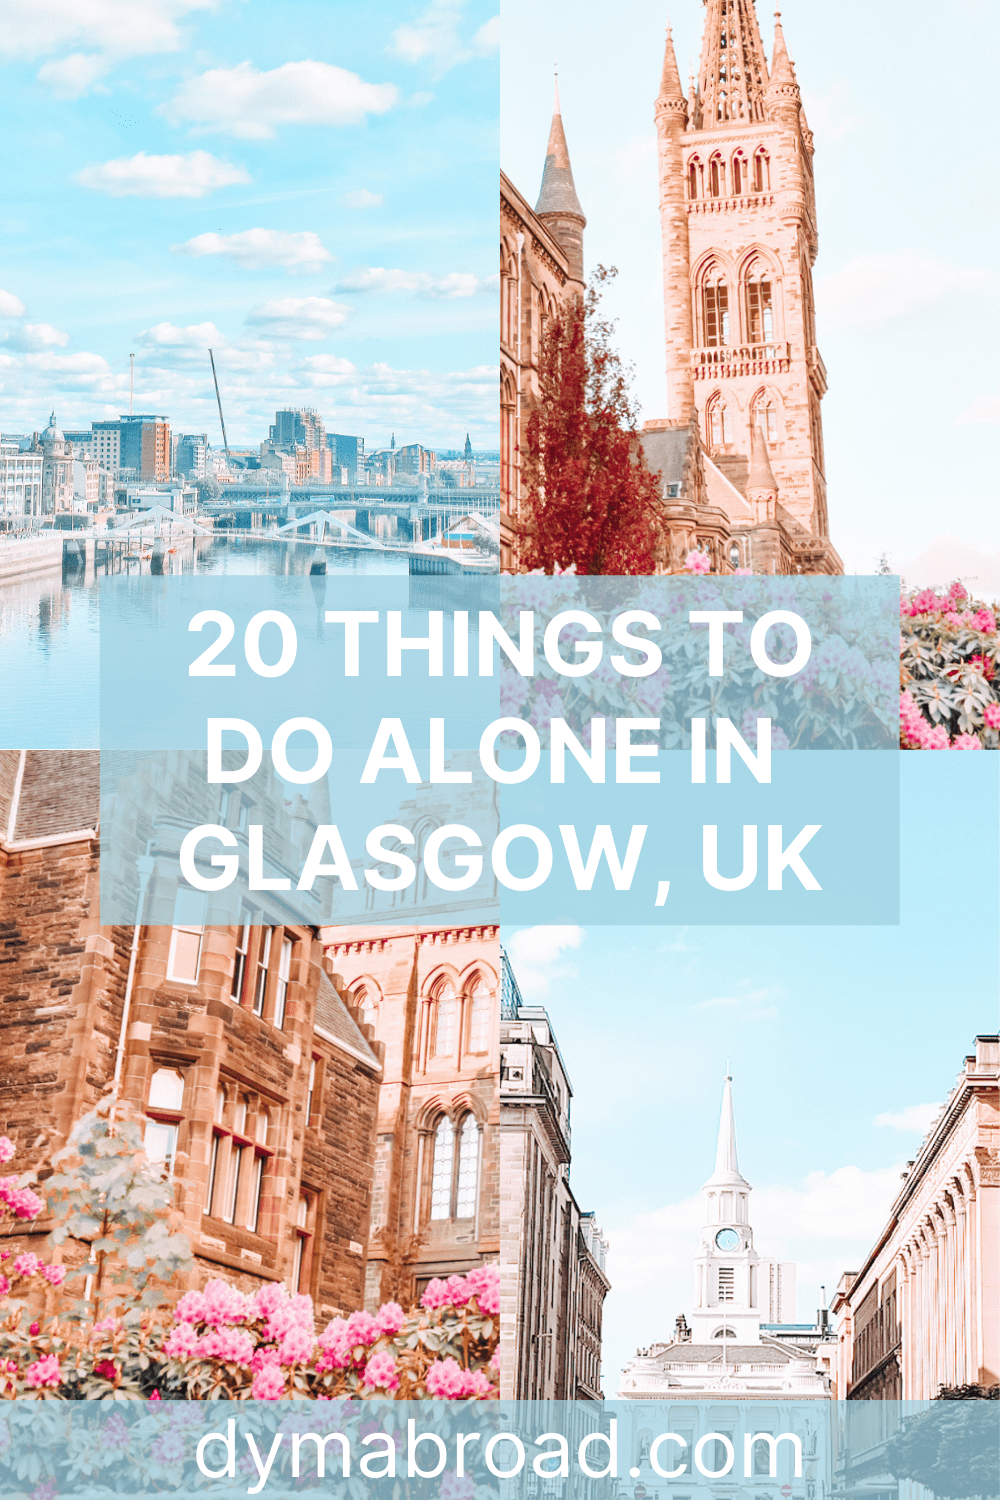 Things to do alone in Glasgow Pinterest image